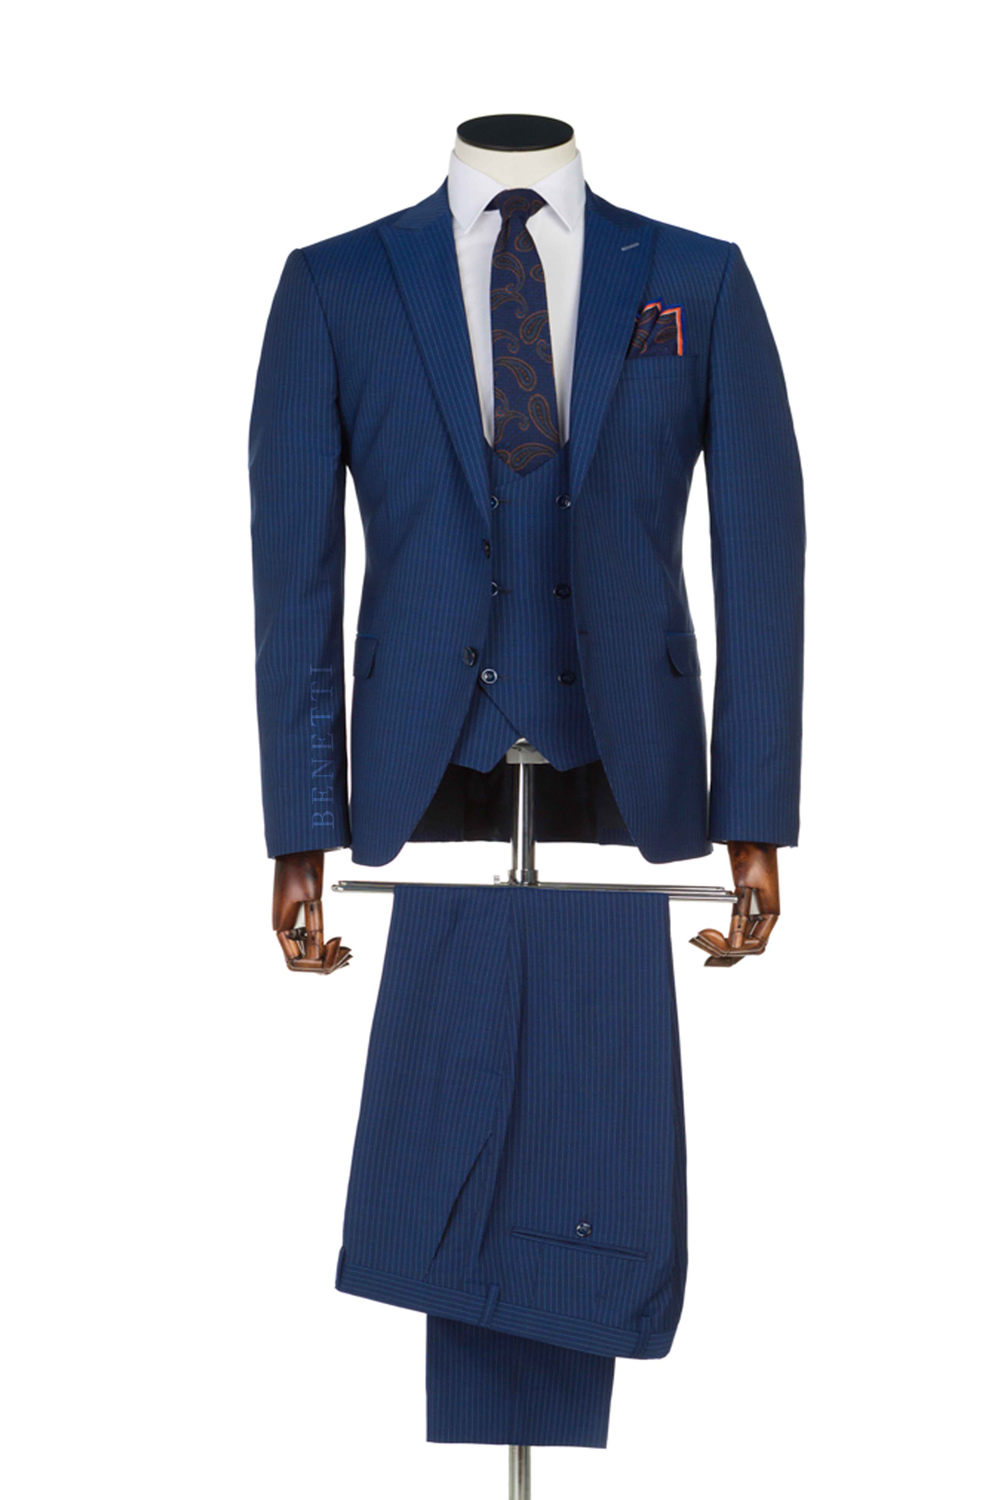 506ceebc Blue Pin Stripe 3 Piece Suit